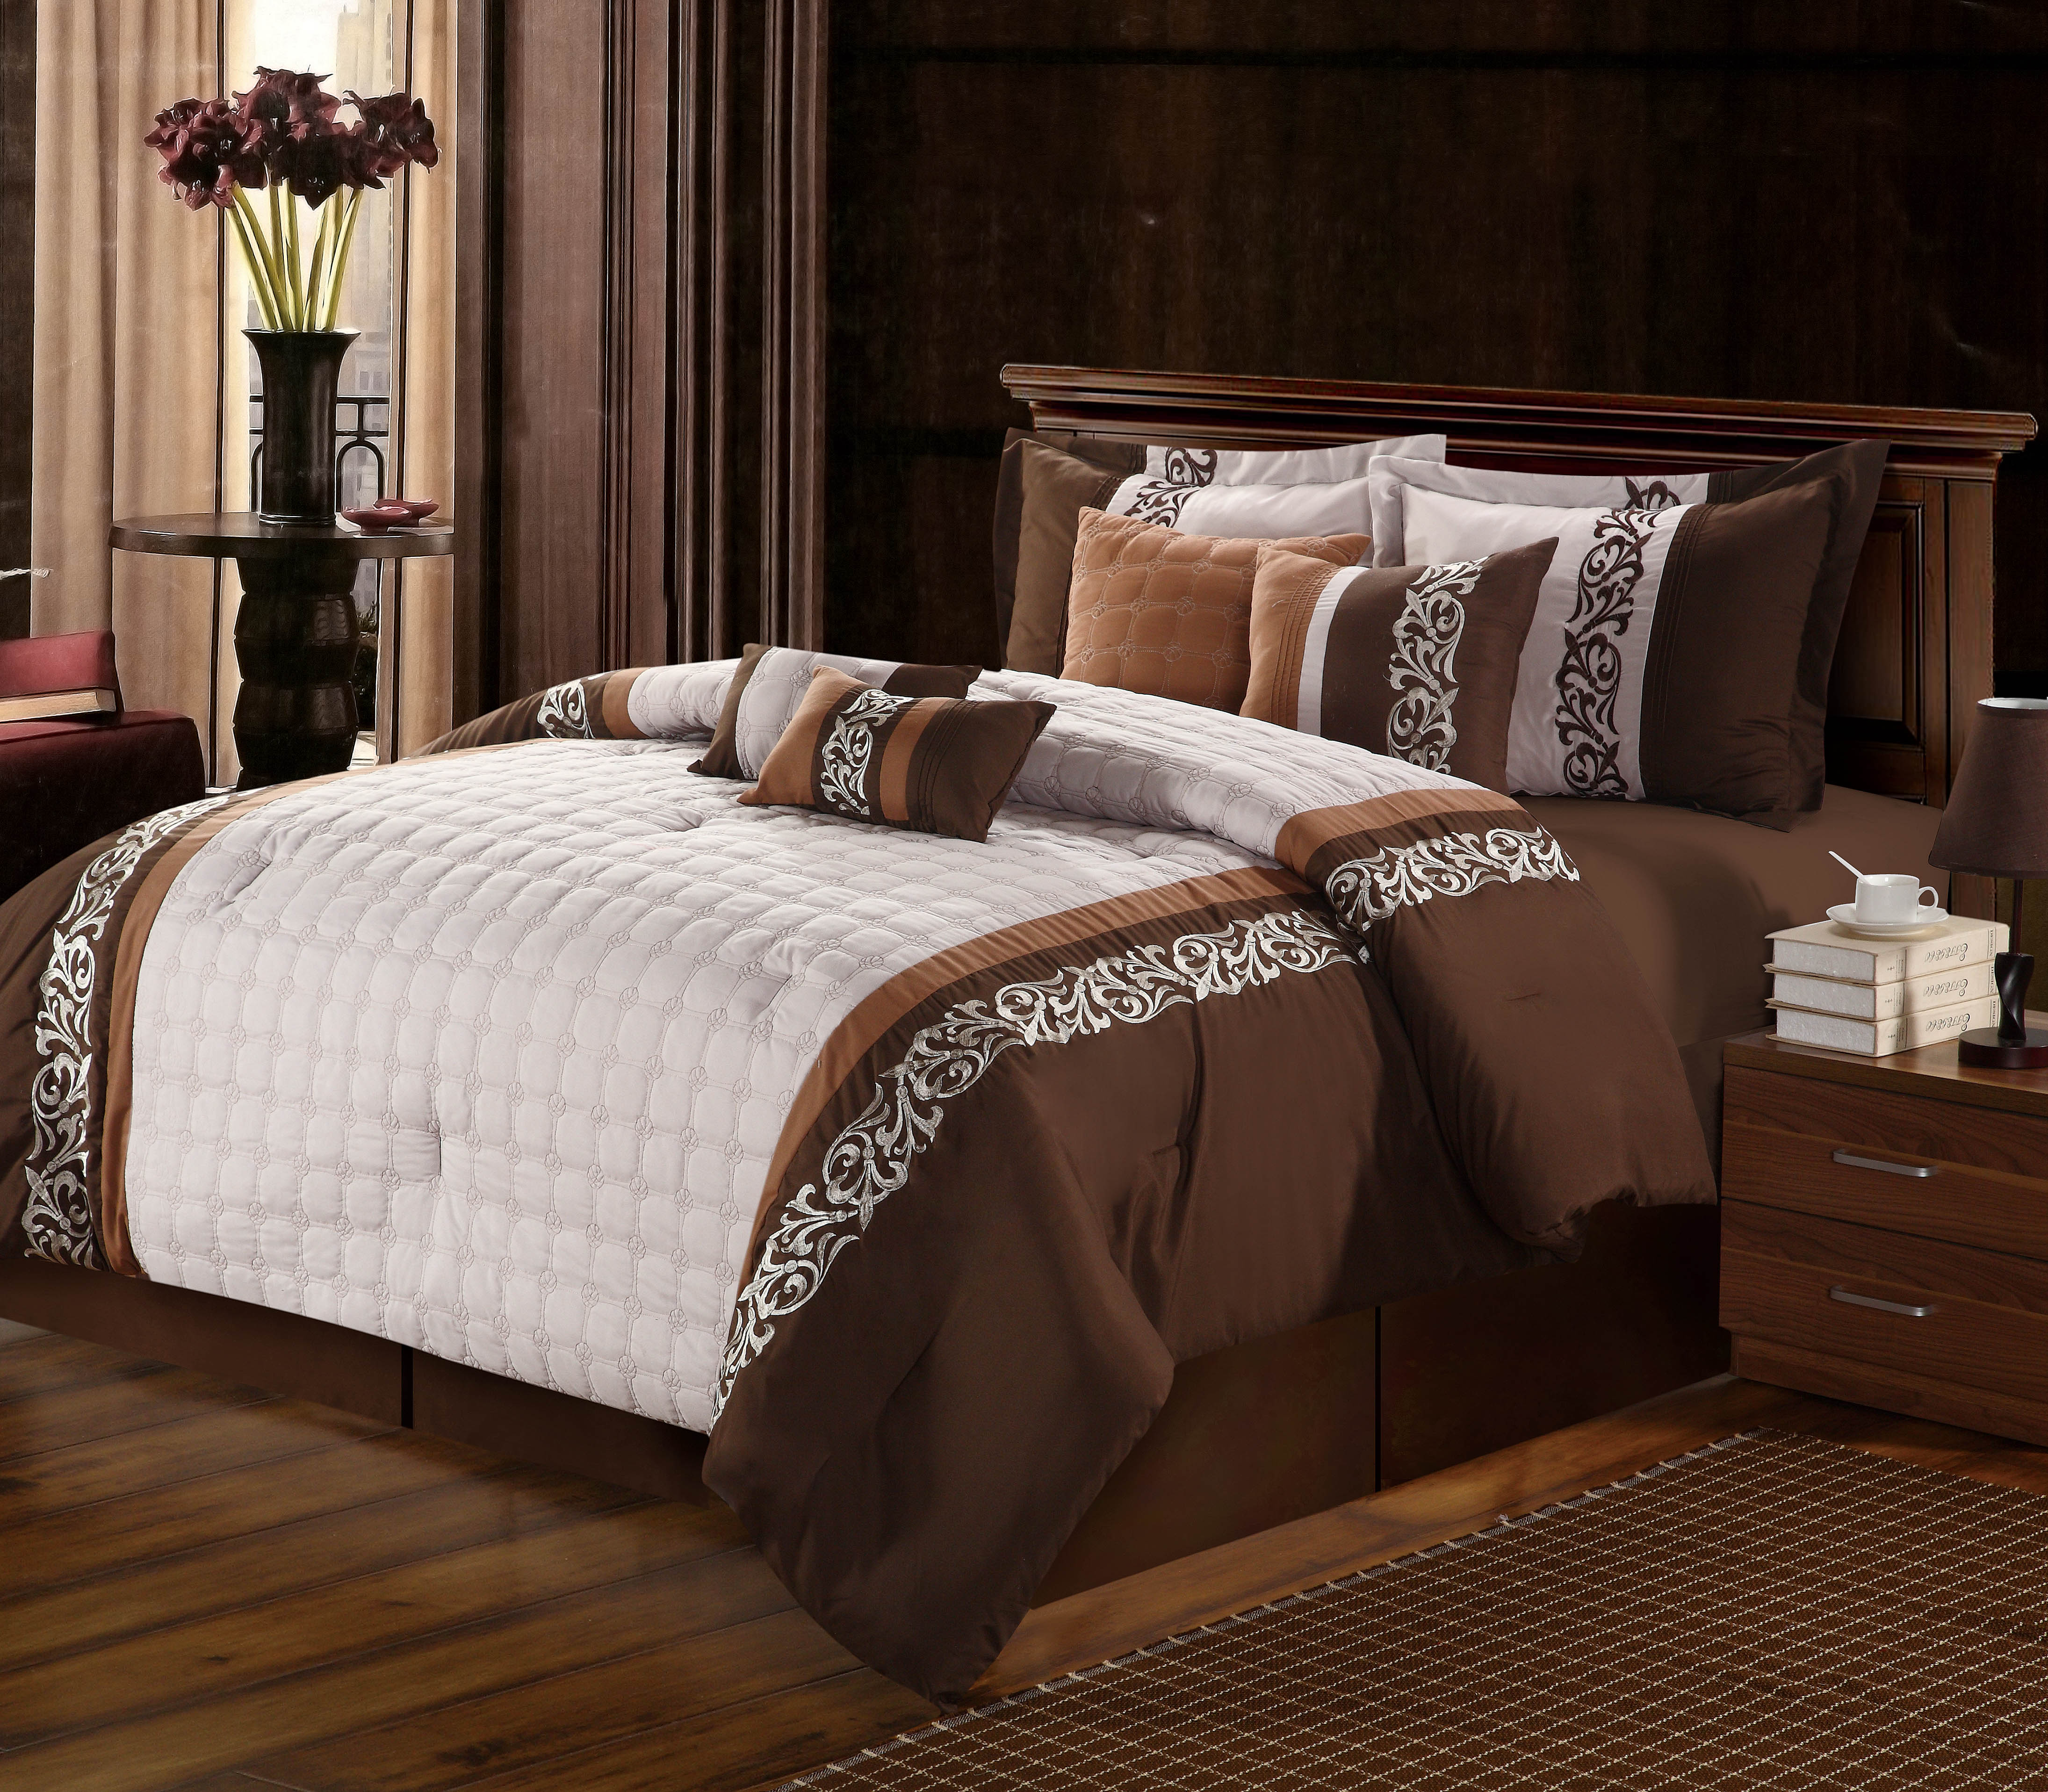 Chic Home Glendale 8-Piece Embroidered Comforter Set, Brown Queen